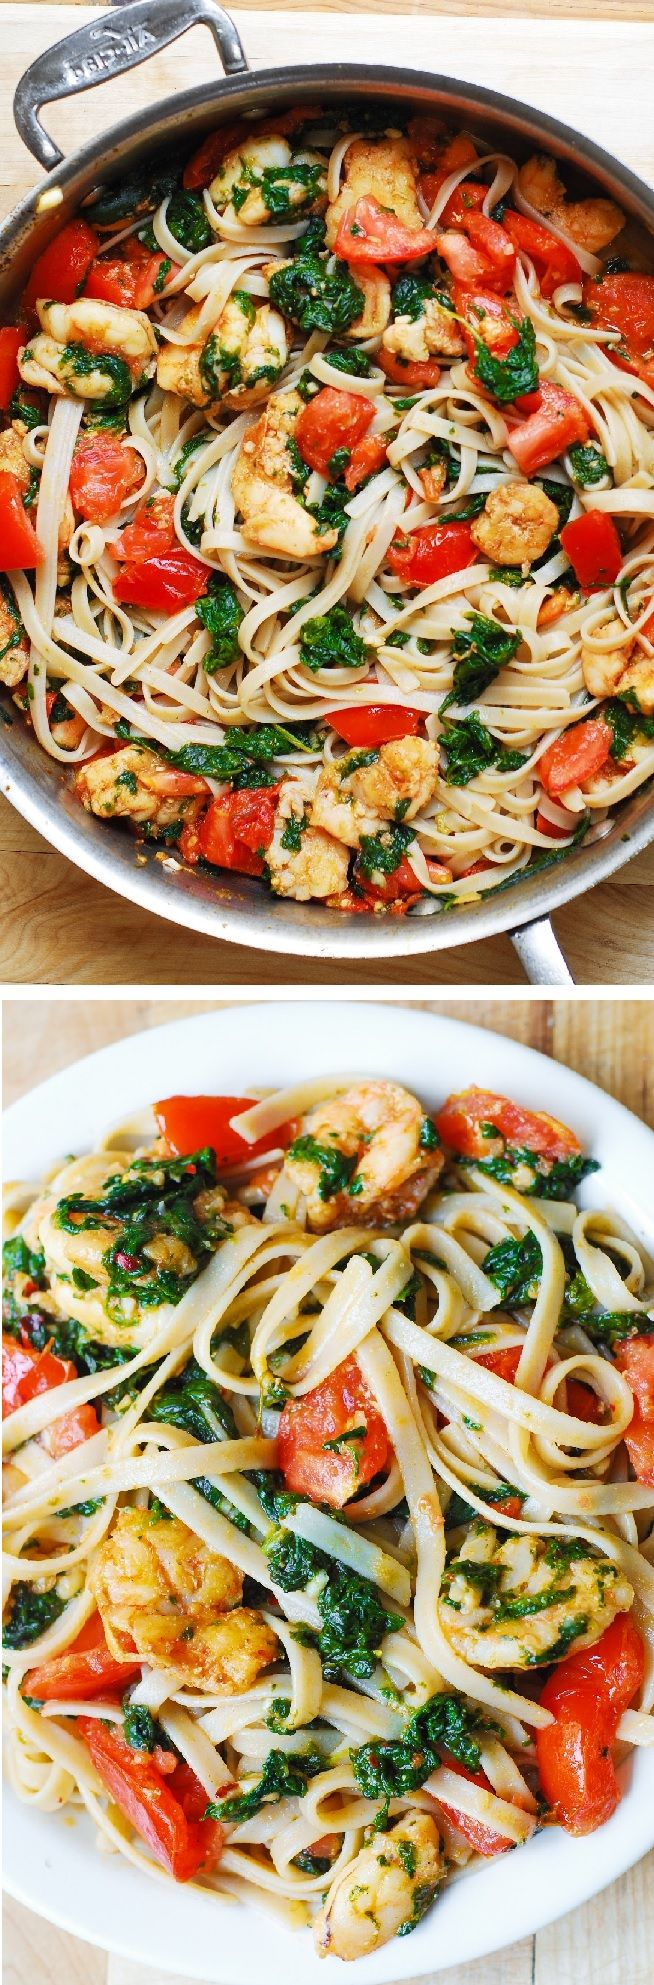 Shrimp, fresh tomatoes, and spinach with fettuccine pasta in garlic butter sauce. So refreshing, spicy, and Italian! @juliasalbum